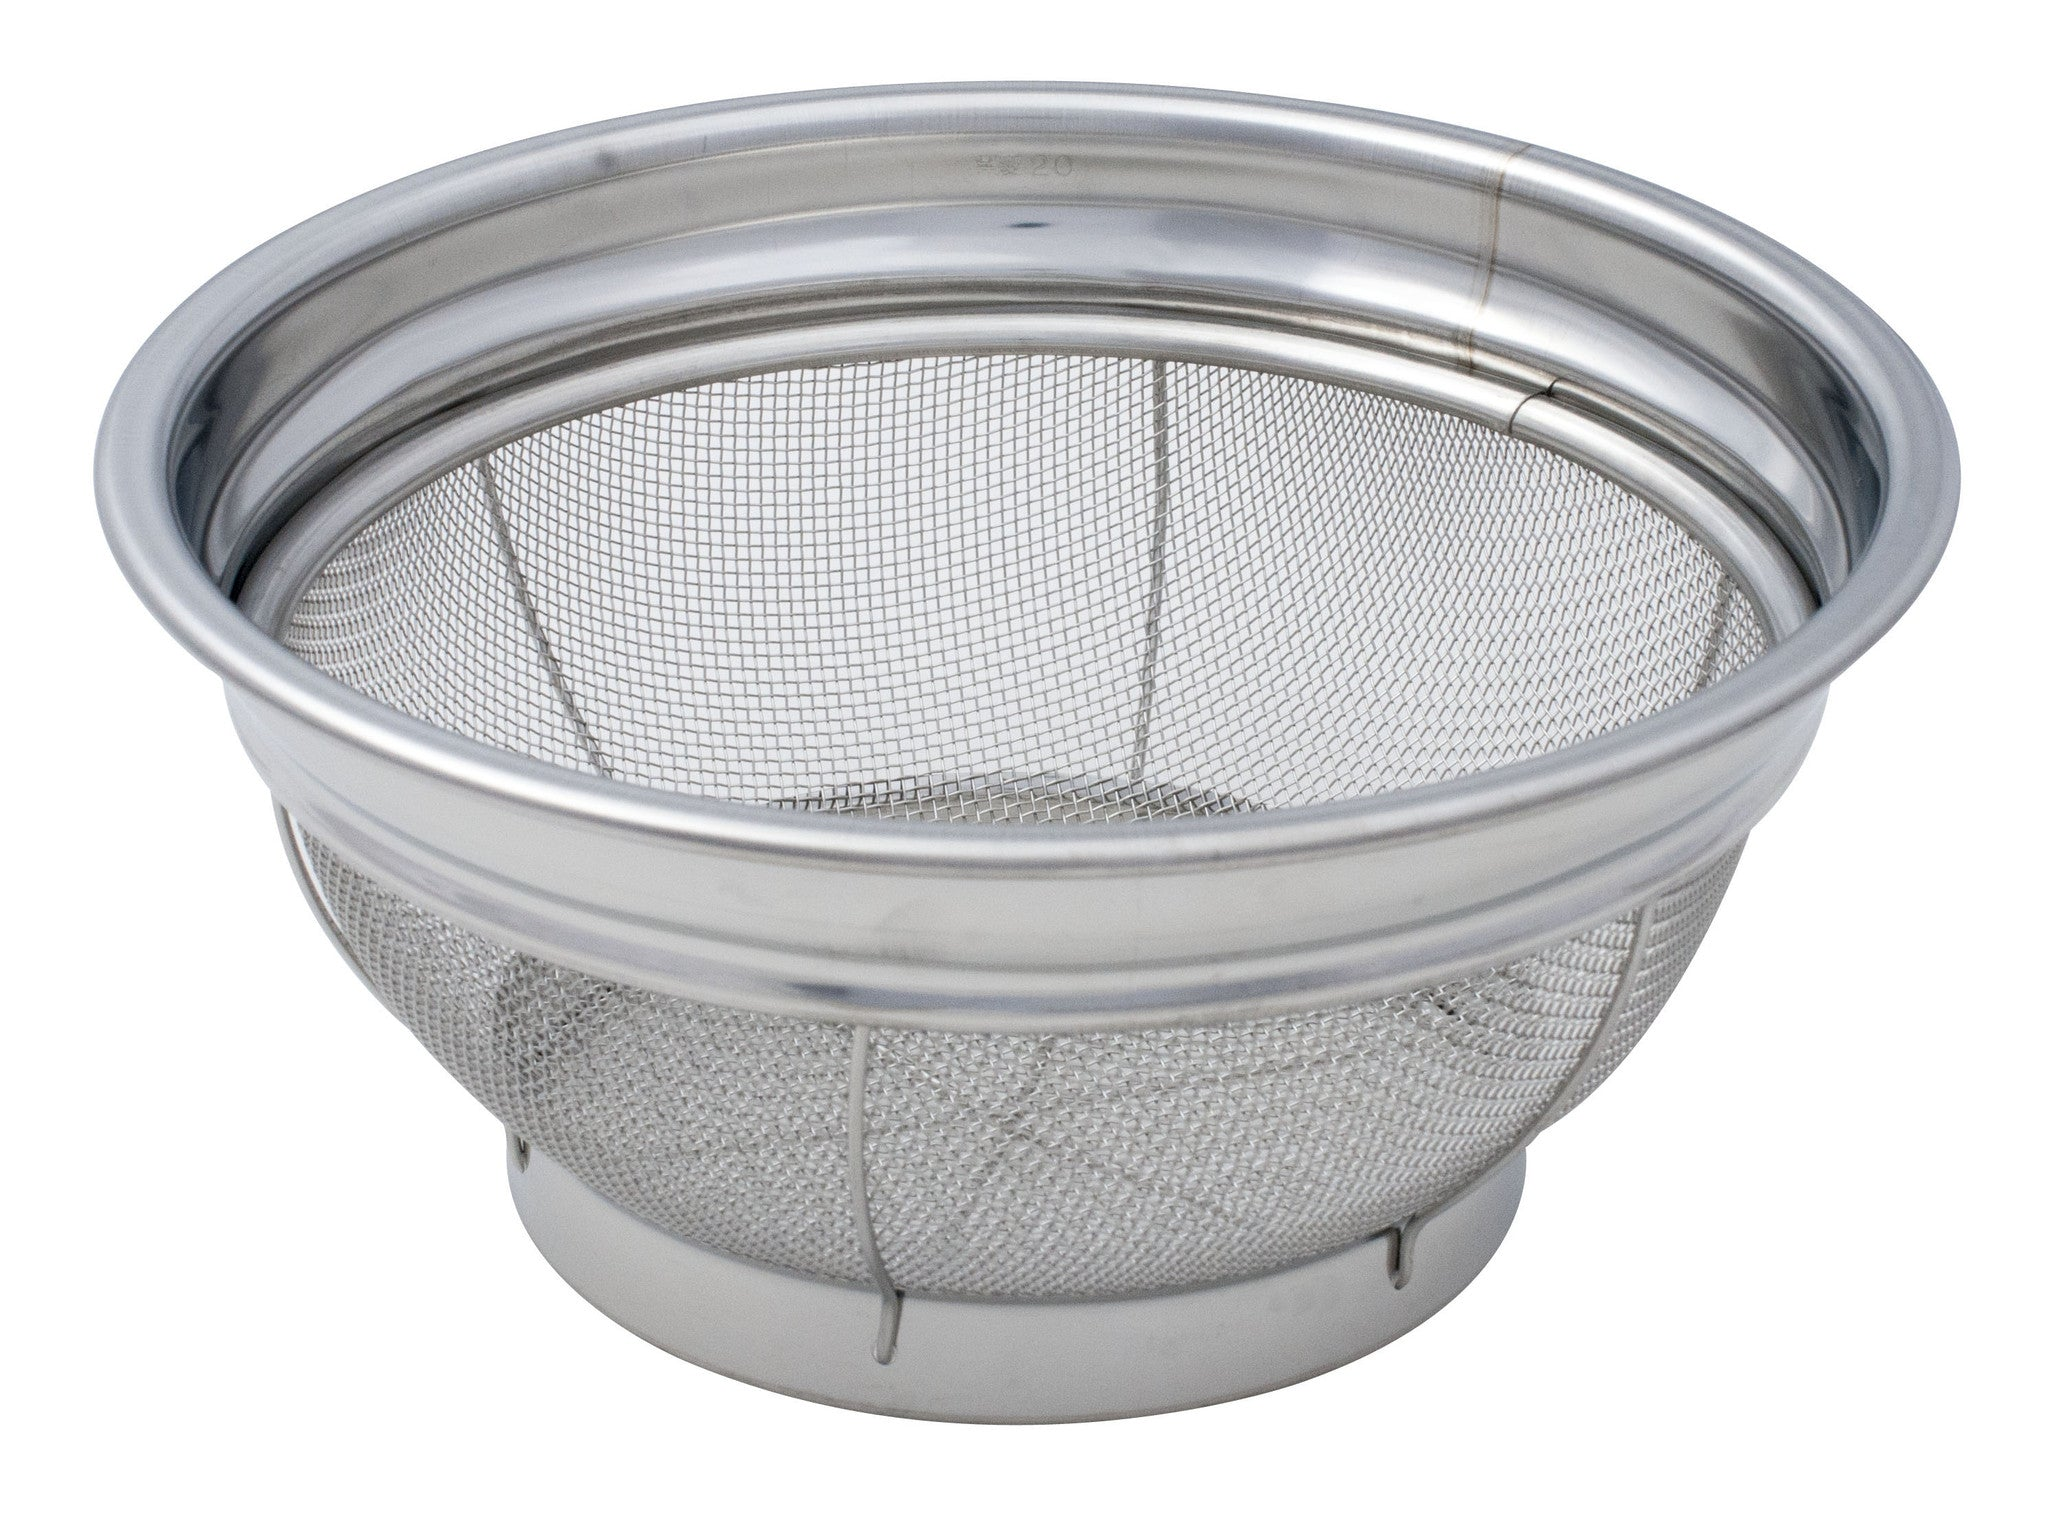 Round Stainless Steel Basket Strainer Singapore Pantry